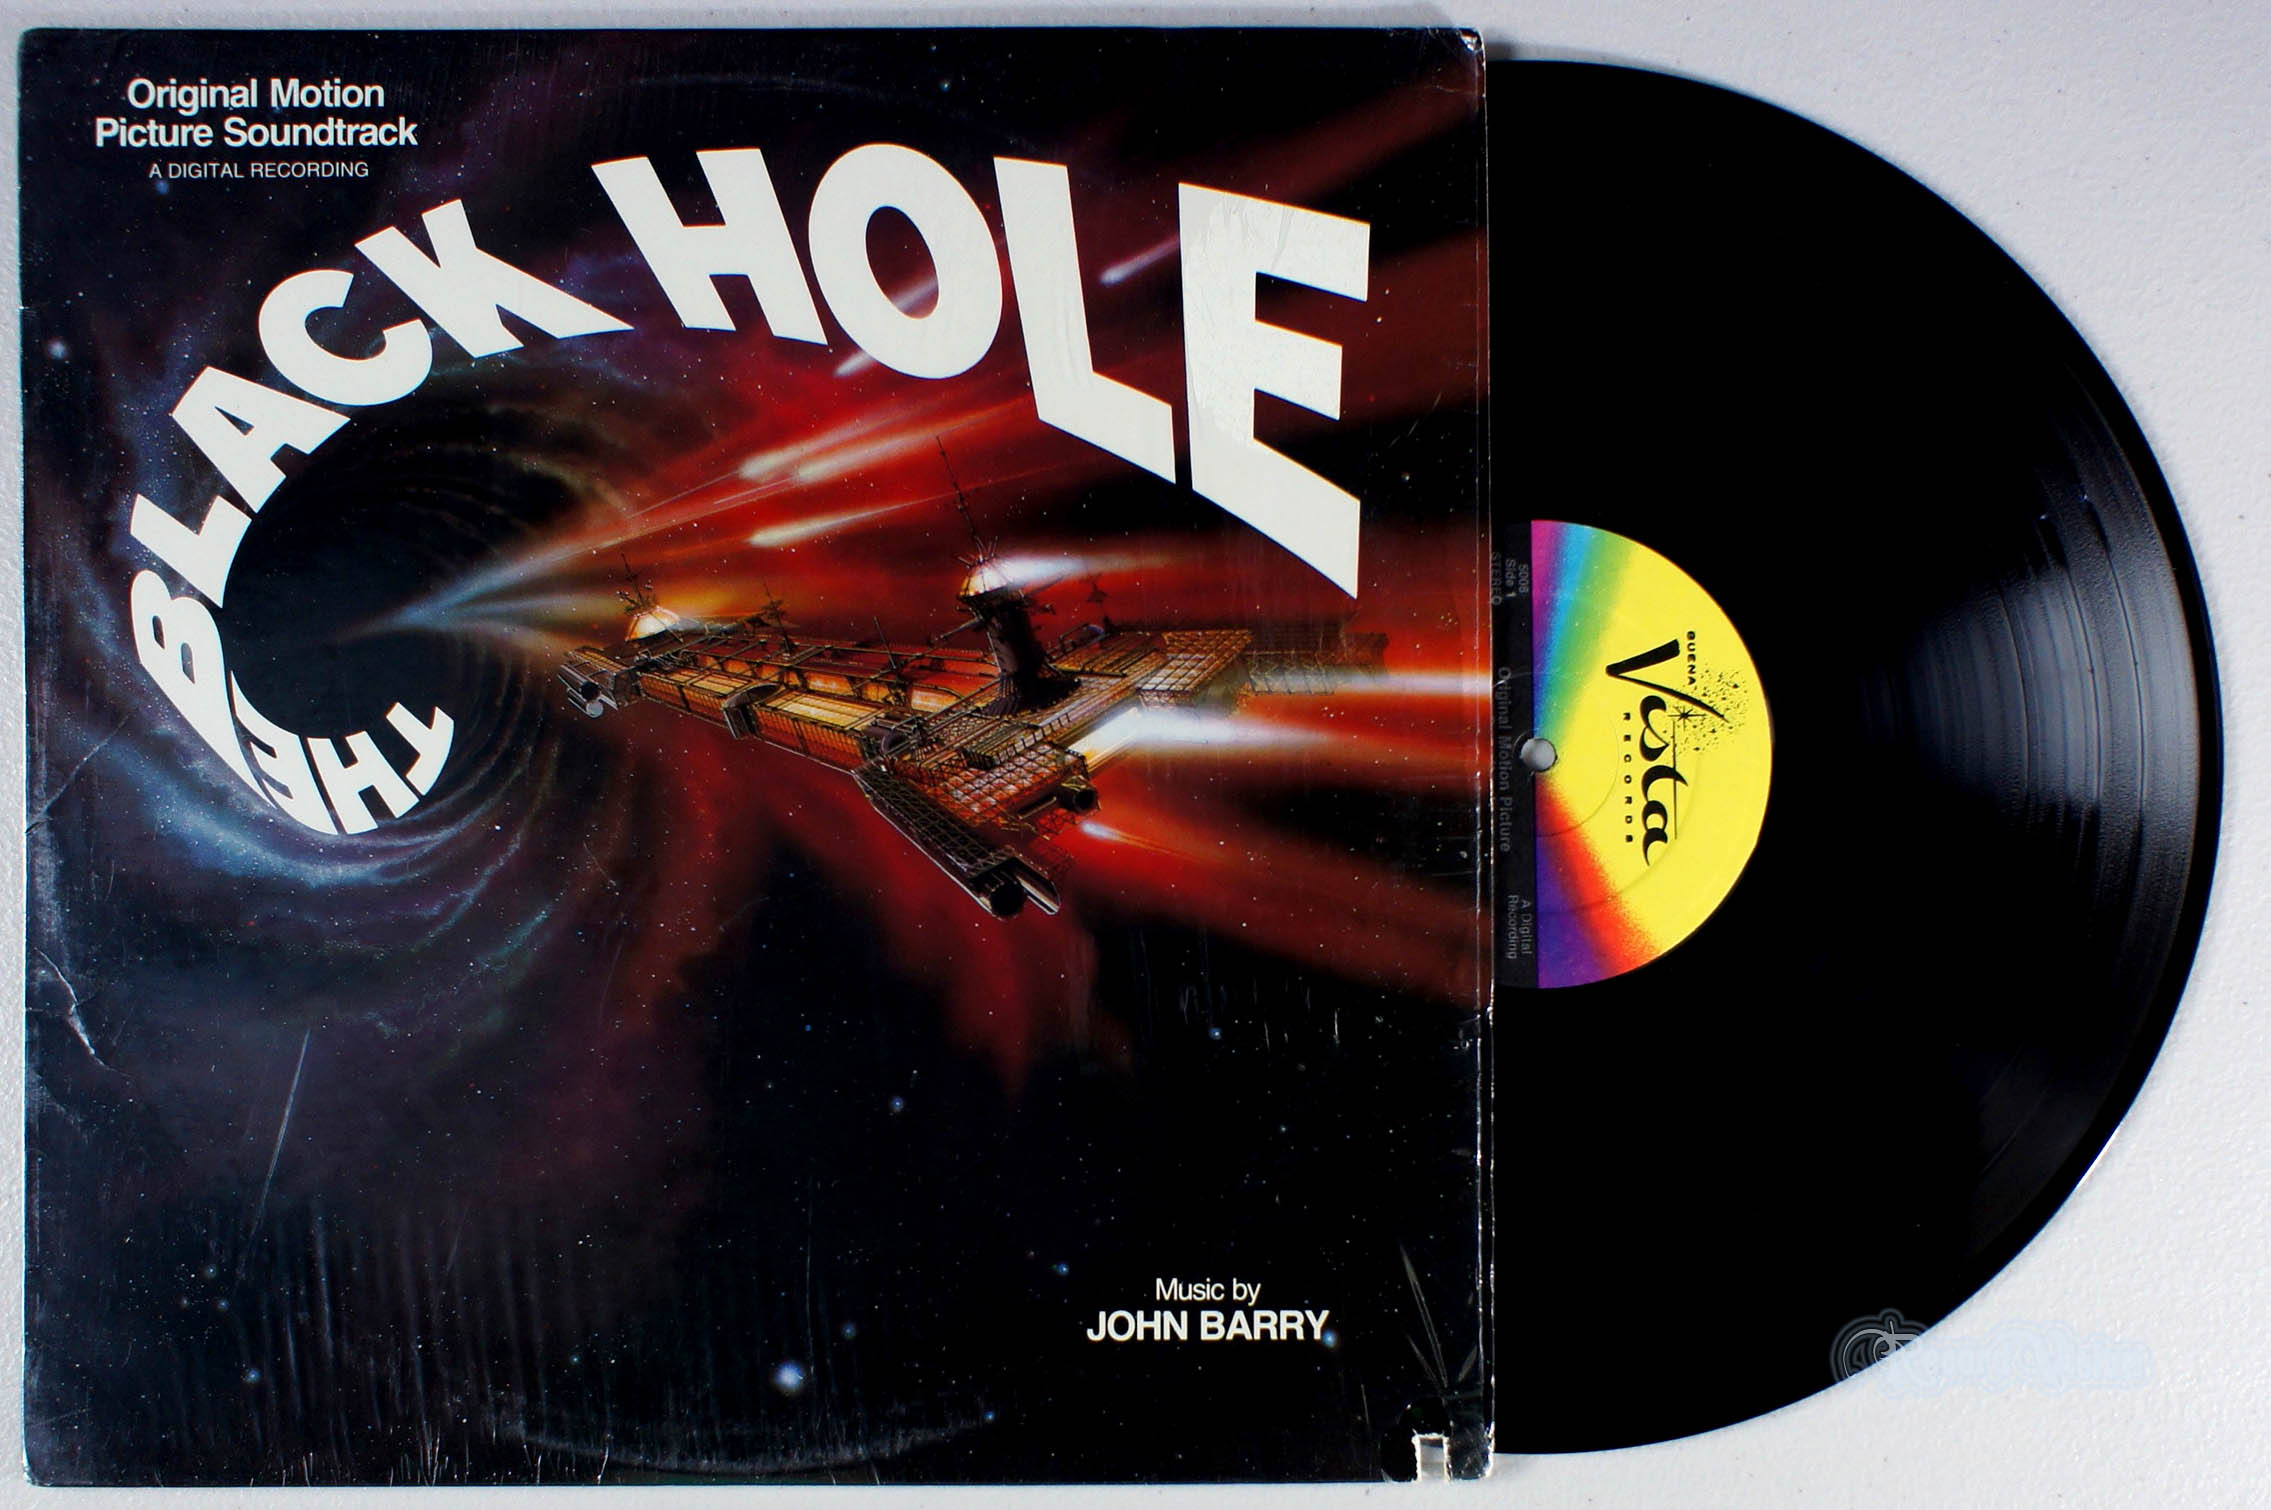 JOHN BARRY - The Black Hole - LP